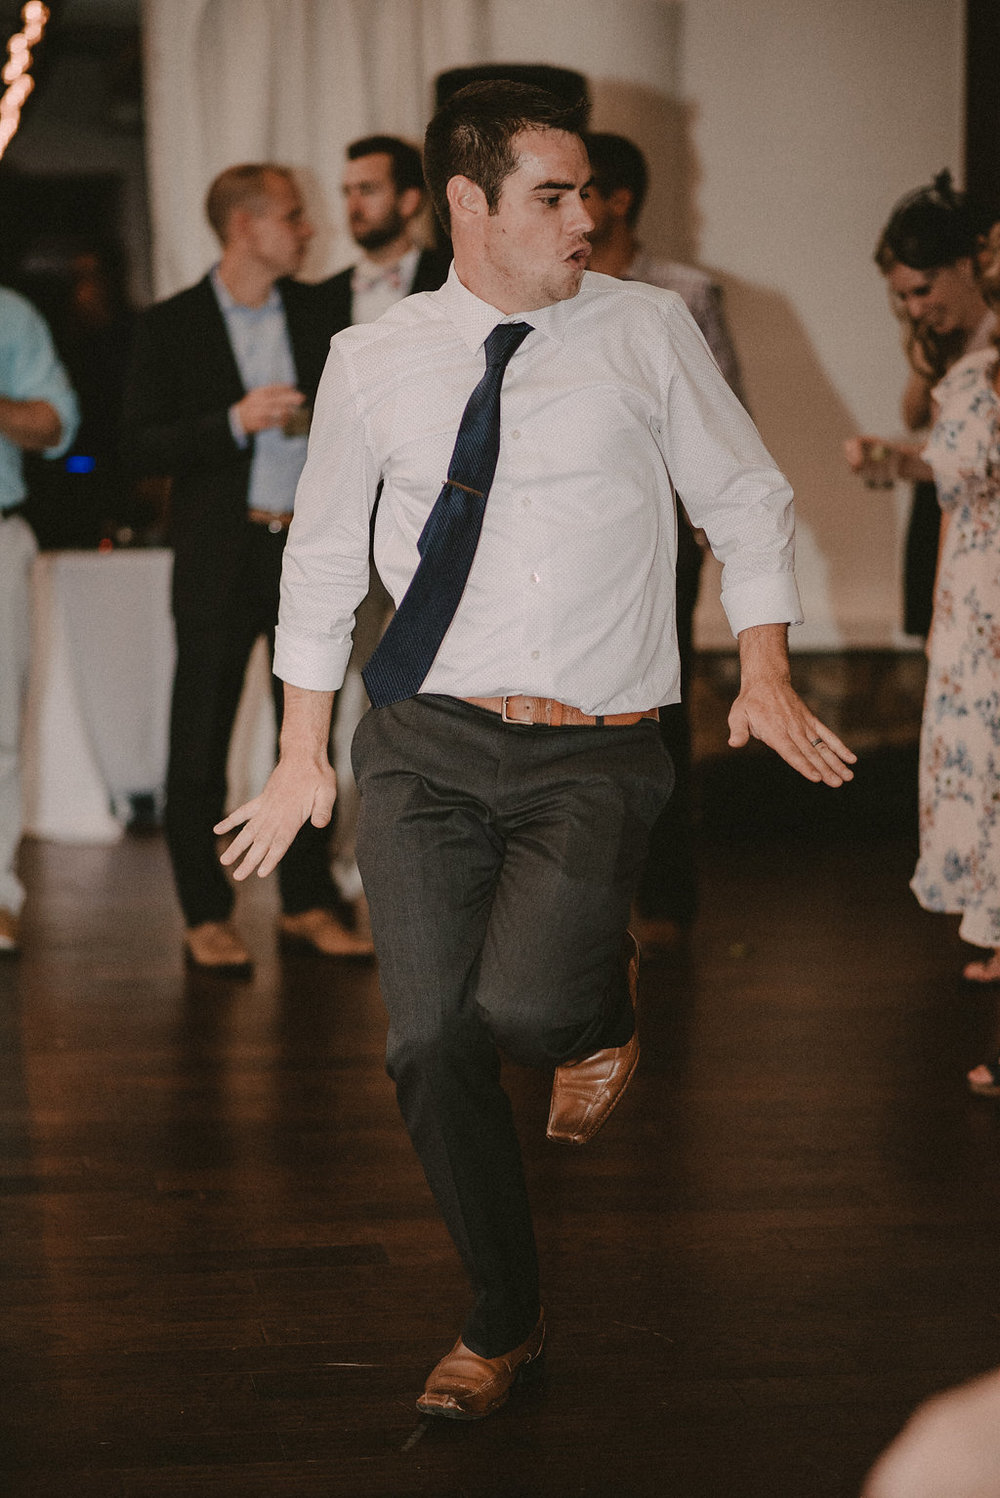 guest dancing at reception photo